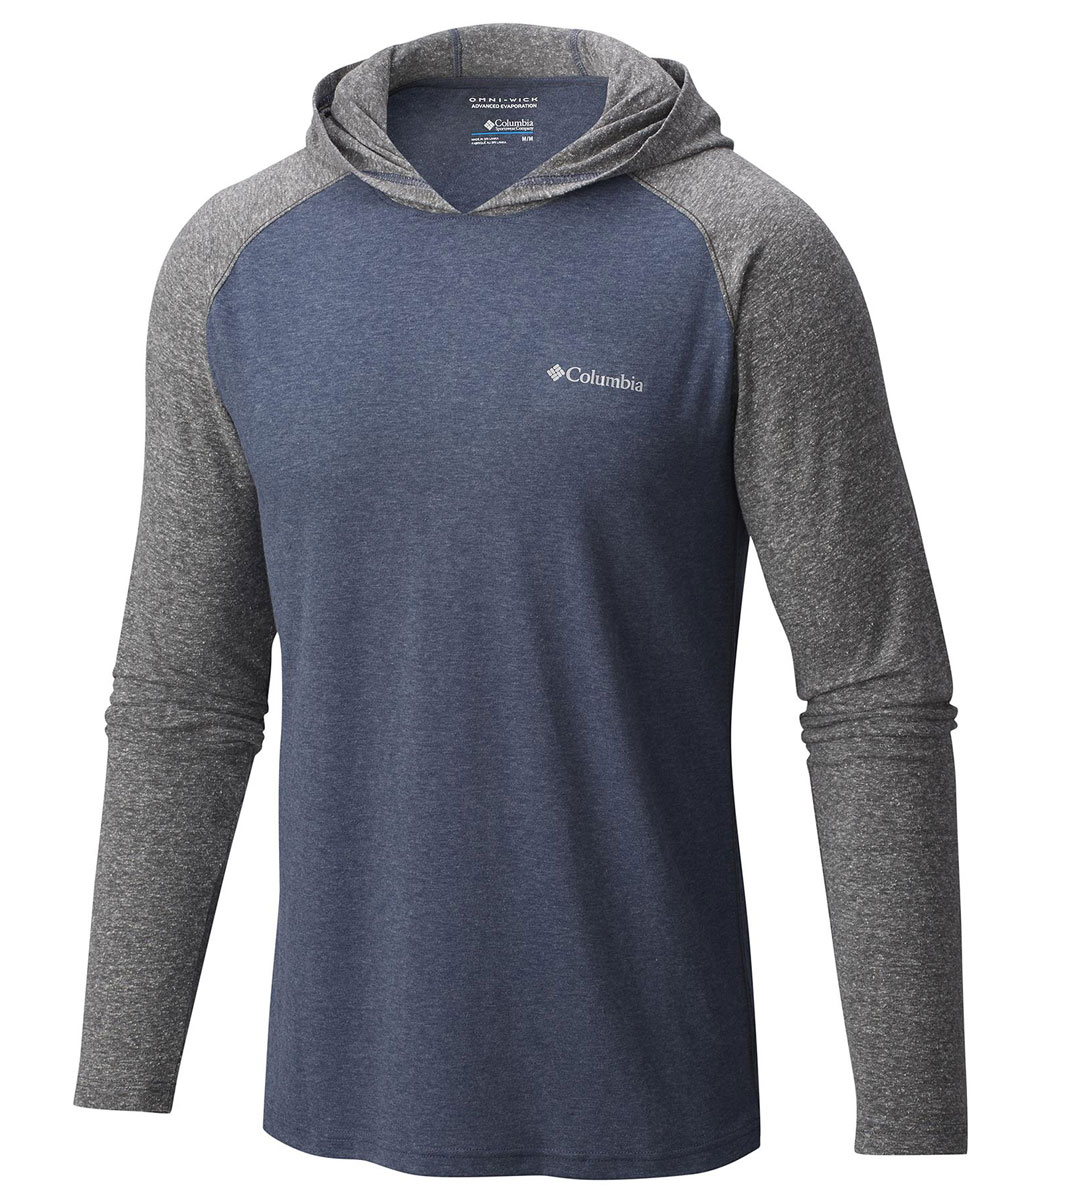 Худи мужское Columbia Trail Shaker Mens Hoody, цвет: темно-синий, серый. 1654301-492. Размер S (44/46) columbia sportswear women s saturday trail shorts